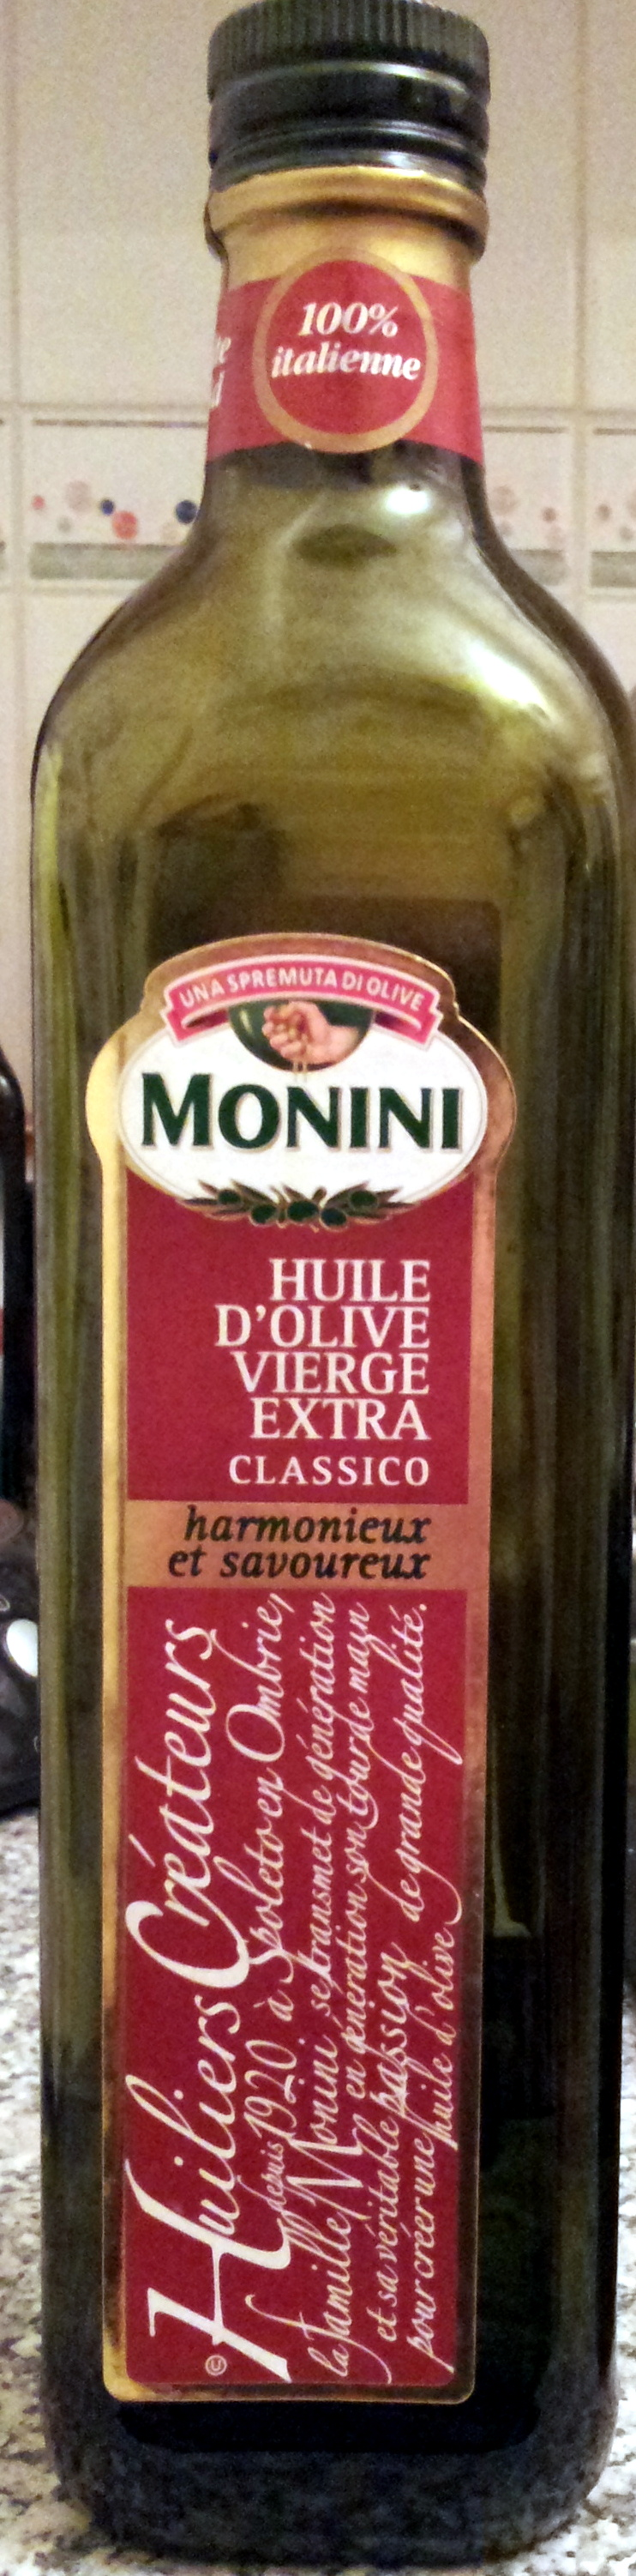 Huile d'Olive Vierge Extra Classico - Product - fr